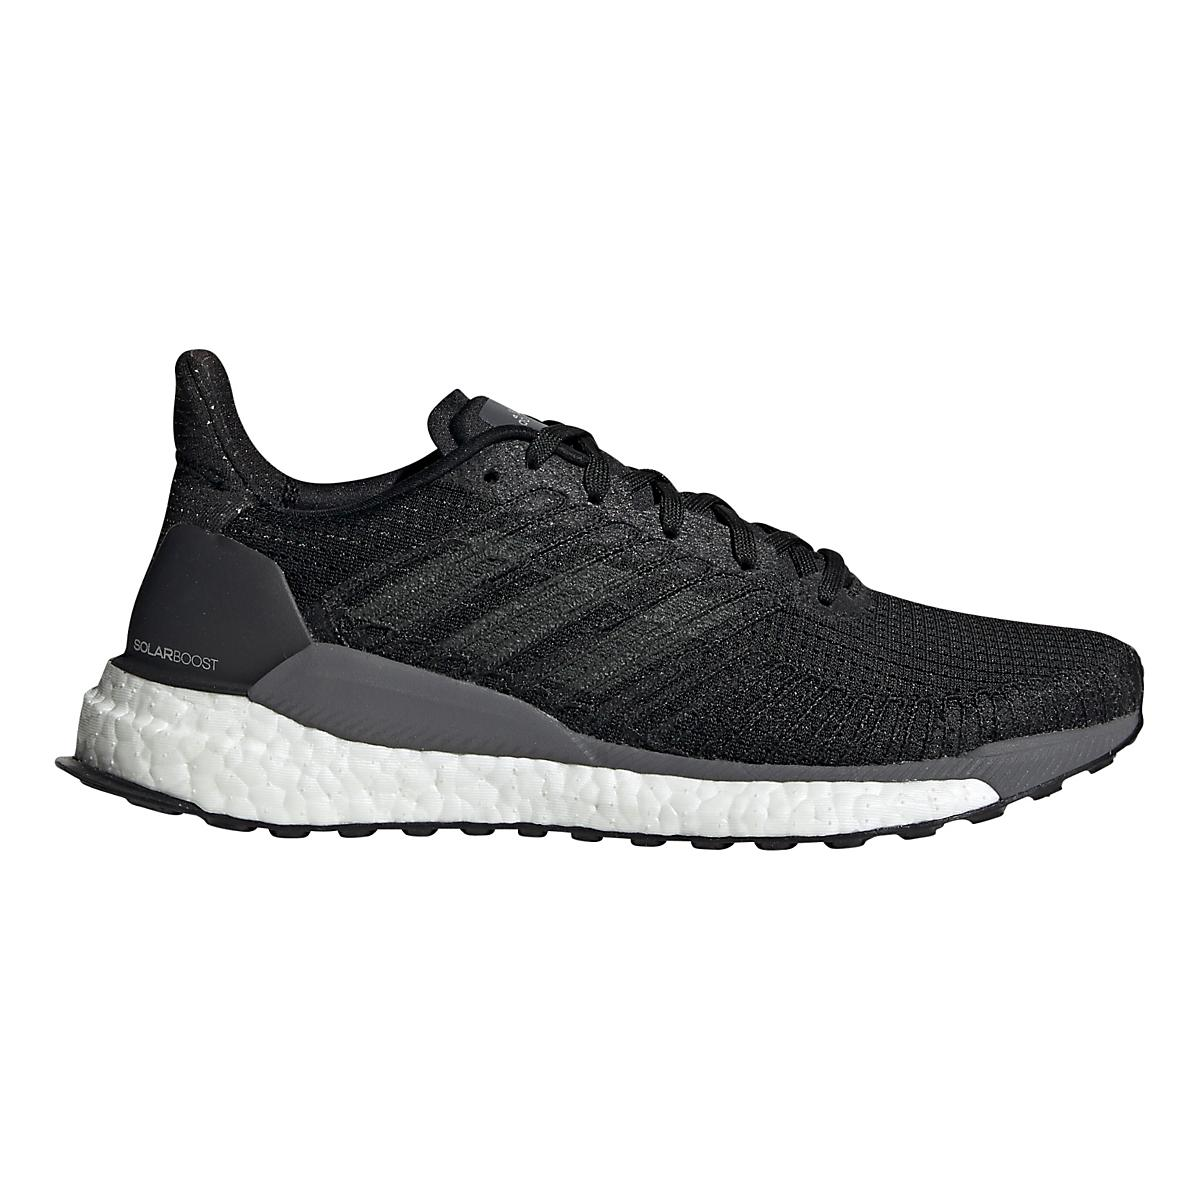 outlet online retailer shopping Women's Solar Boost 19